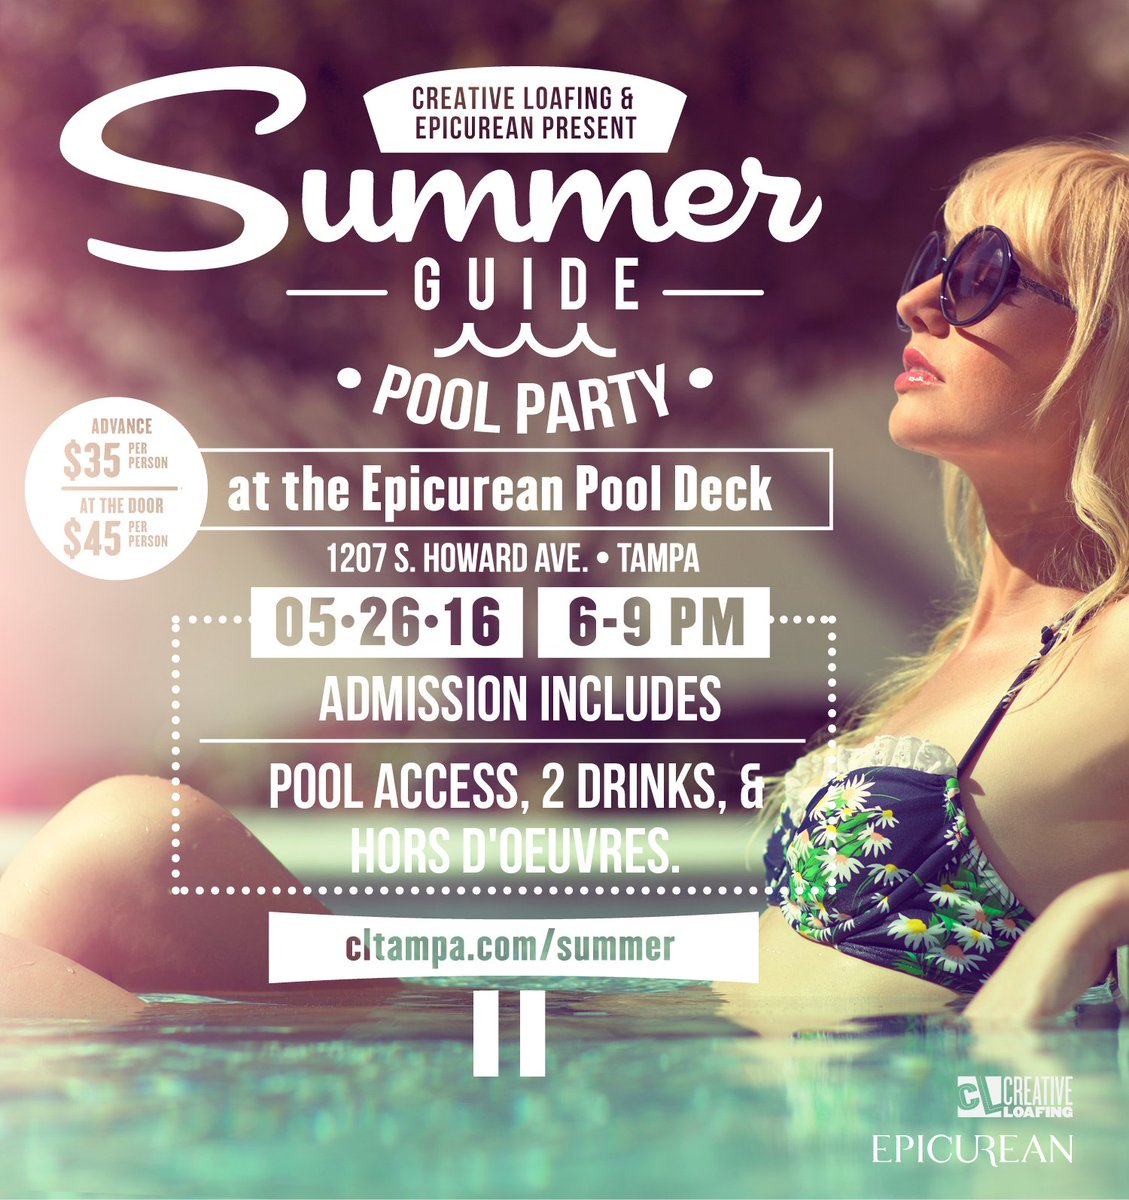 Summer Guide 2016 Pool Party